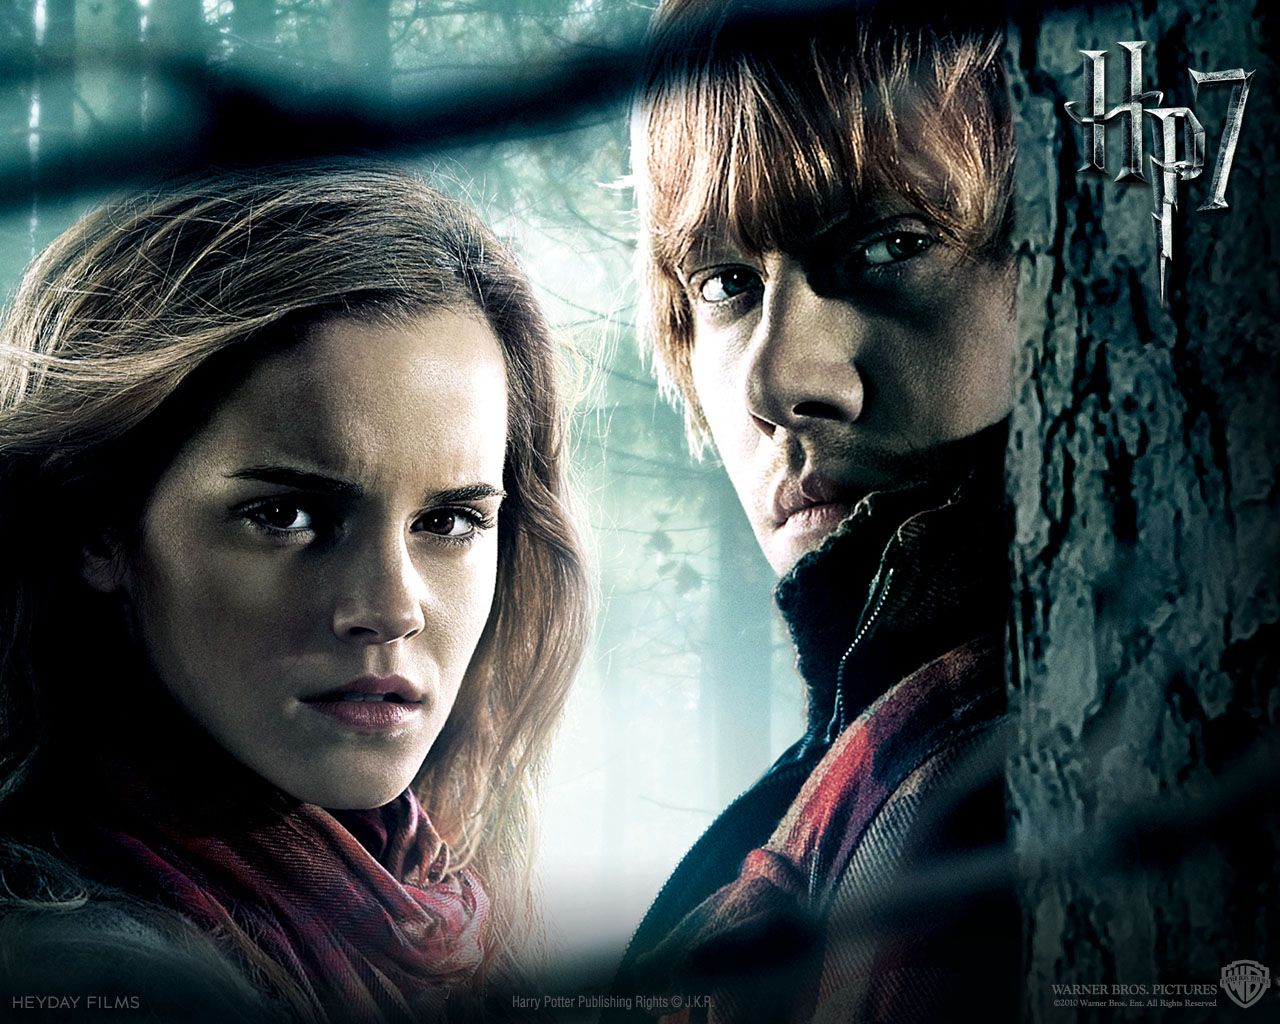 Harry Potter And The Deathly Hallows Part 2 Free Wallpaper Wallpaper Resour Ron And Hermione Harry Potter Ginny Harry Potter Movies